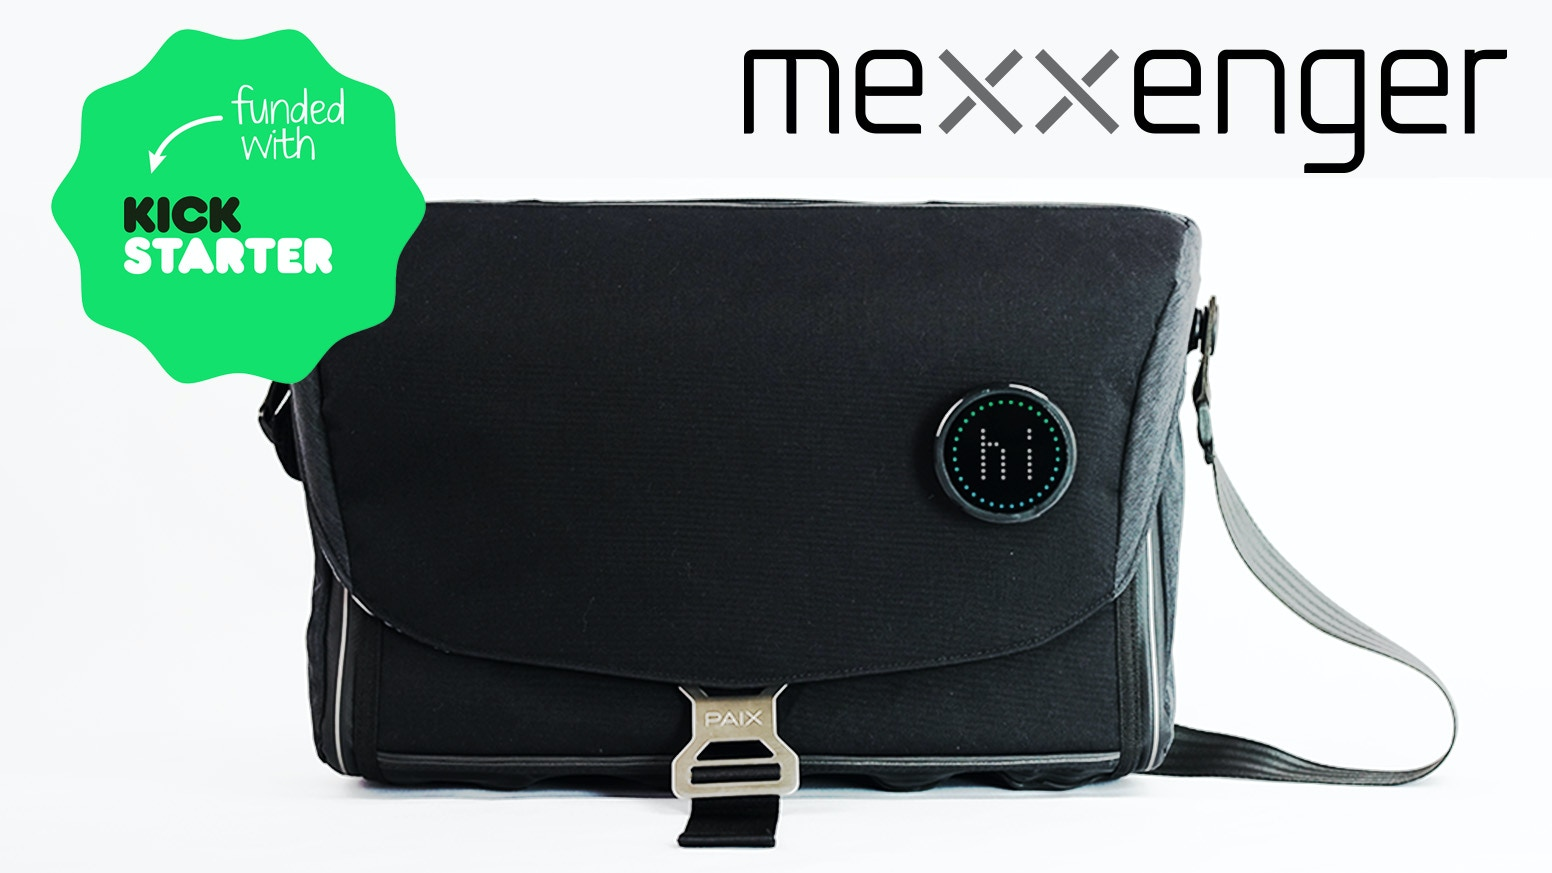 Merging Design Tech And Functionality To Create A Versatile Messenger Bag For The Modern